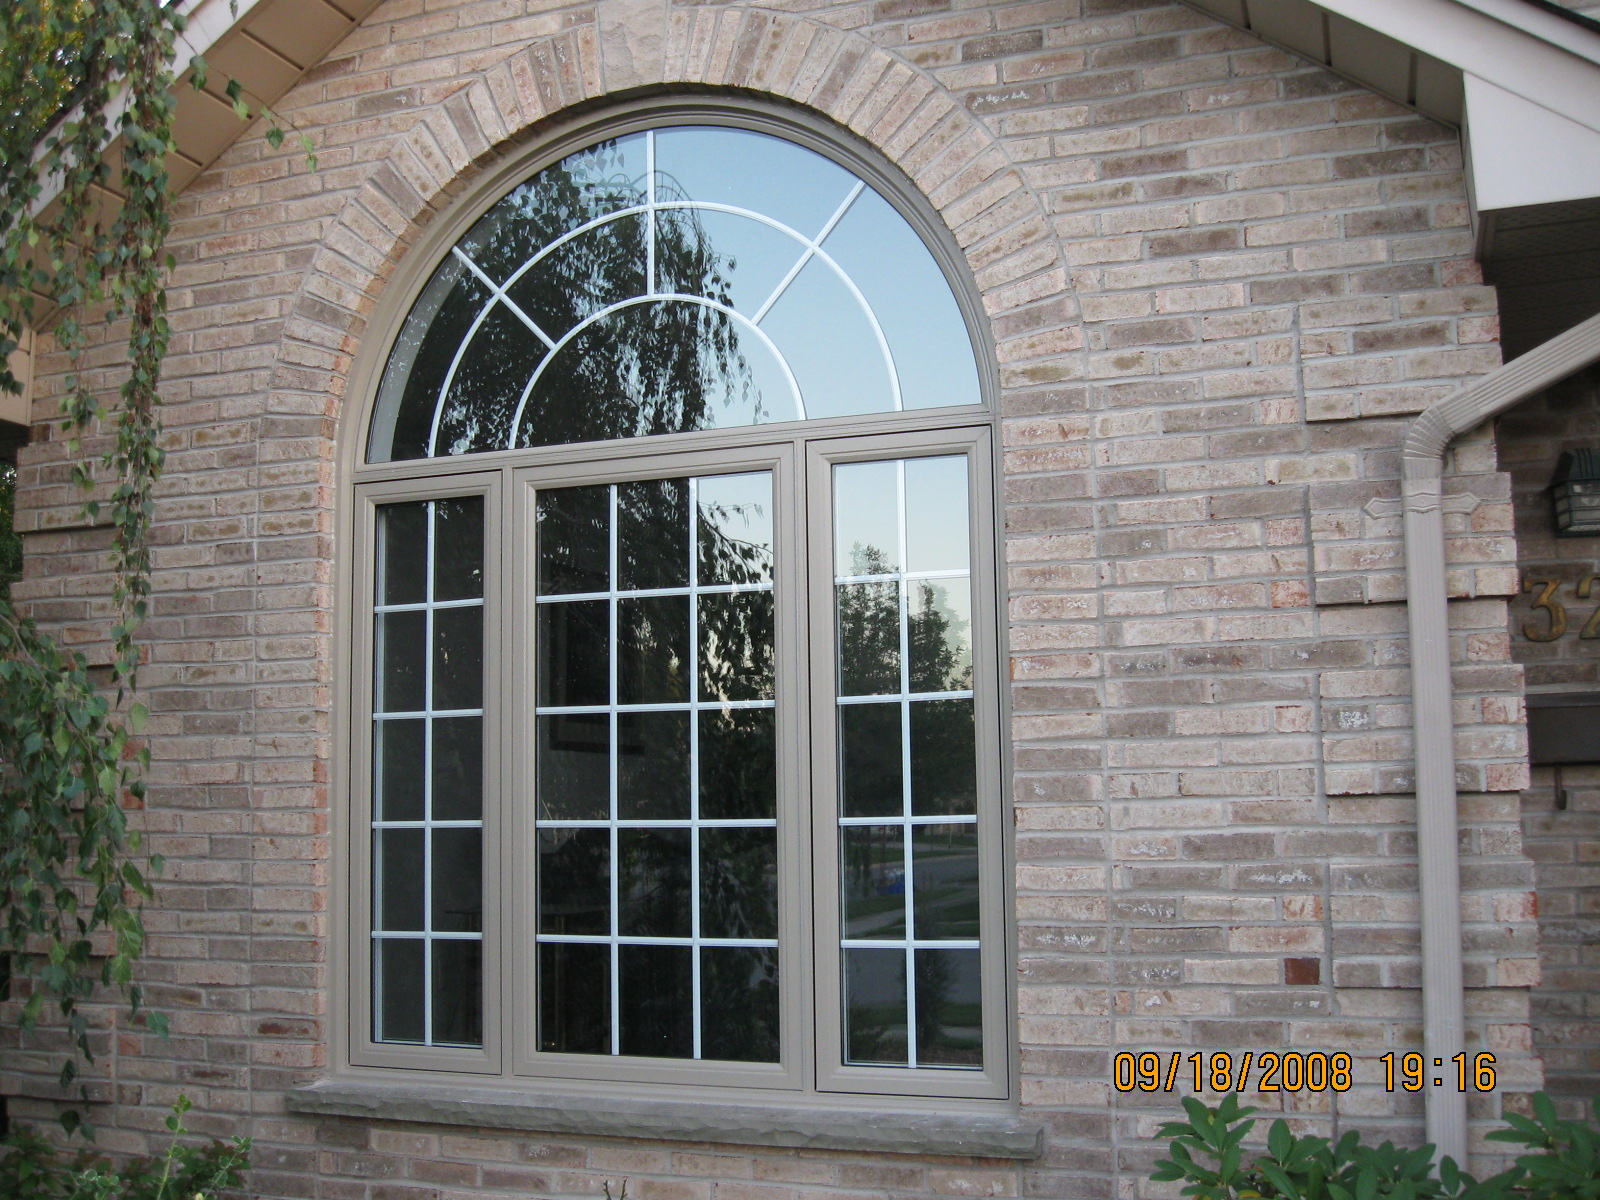 Curved window with grills